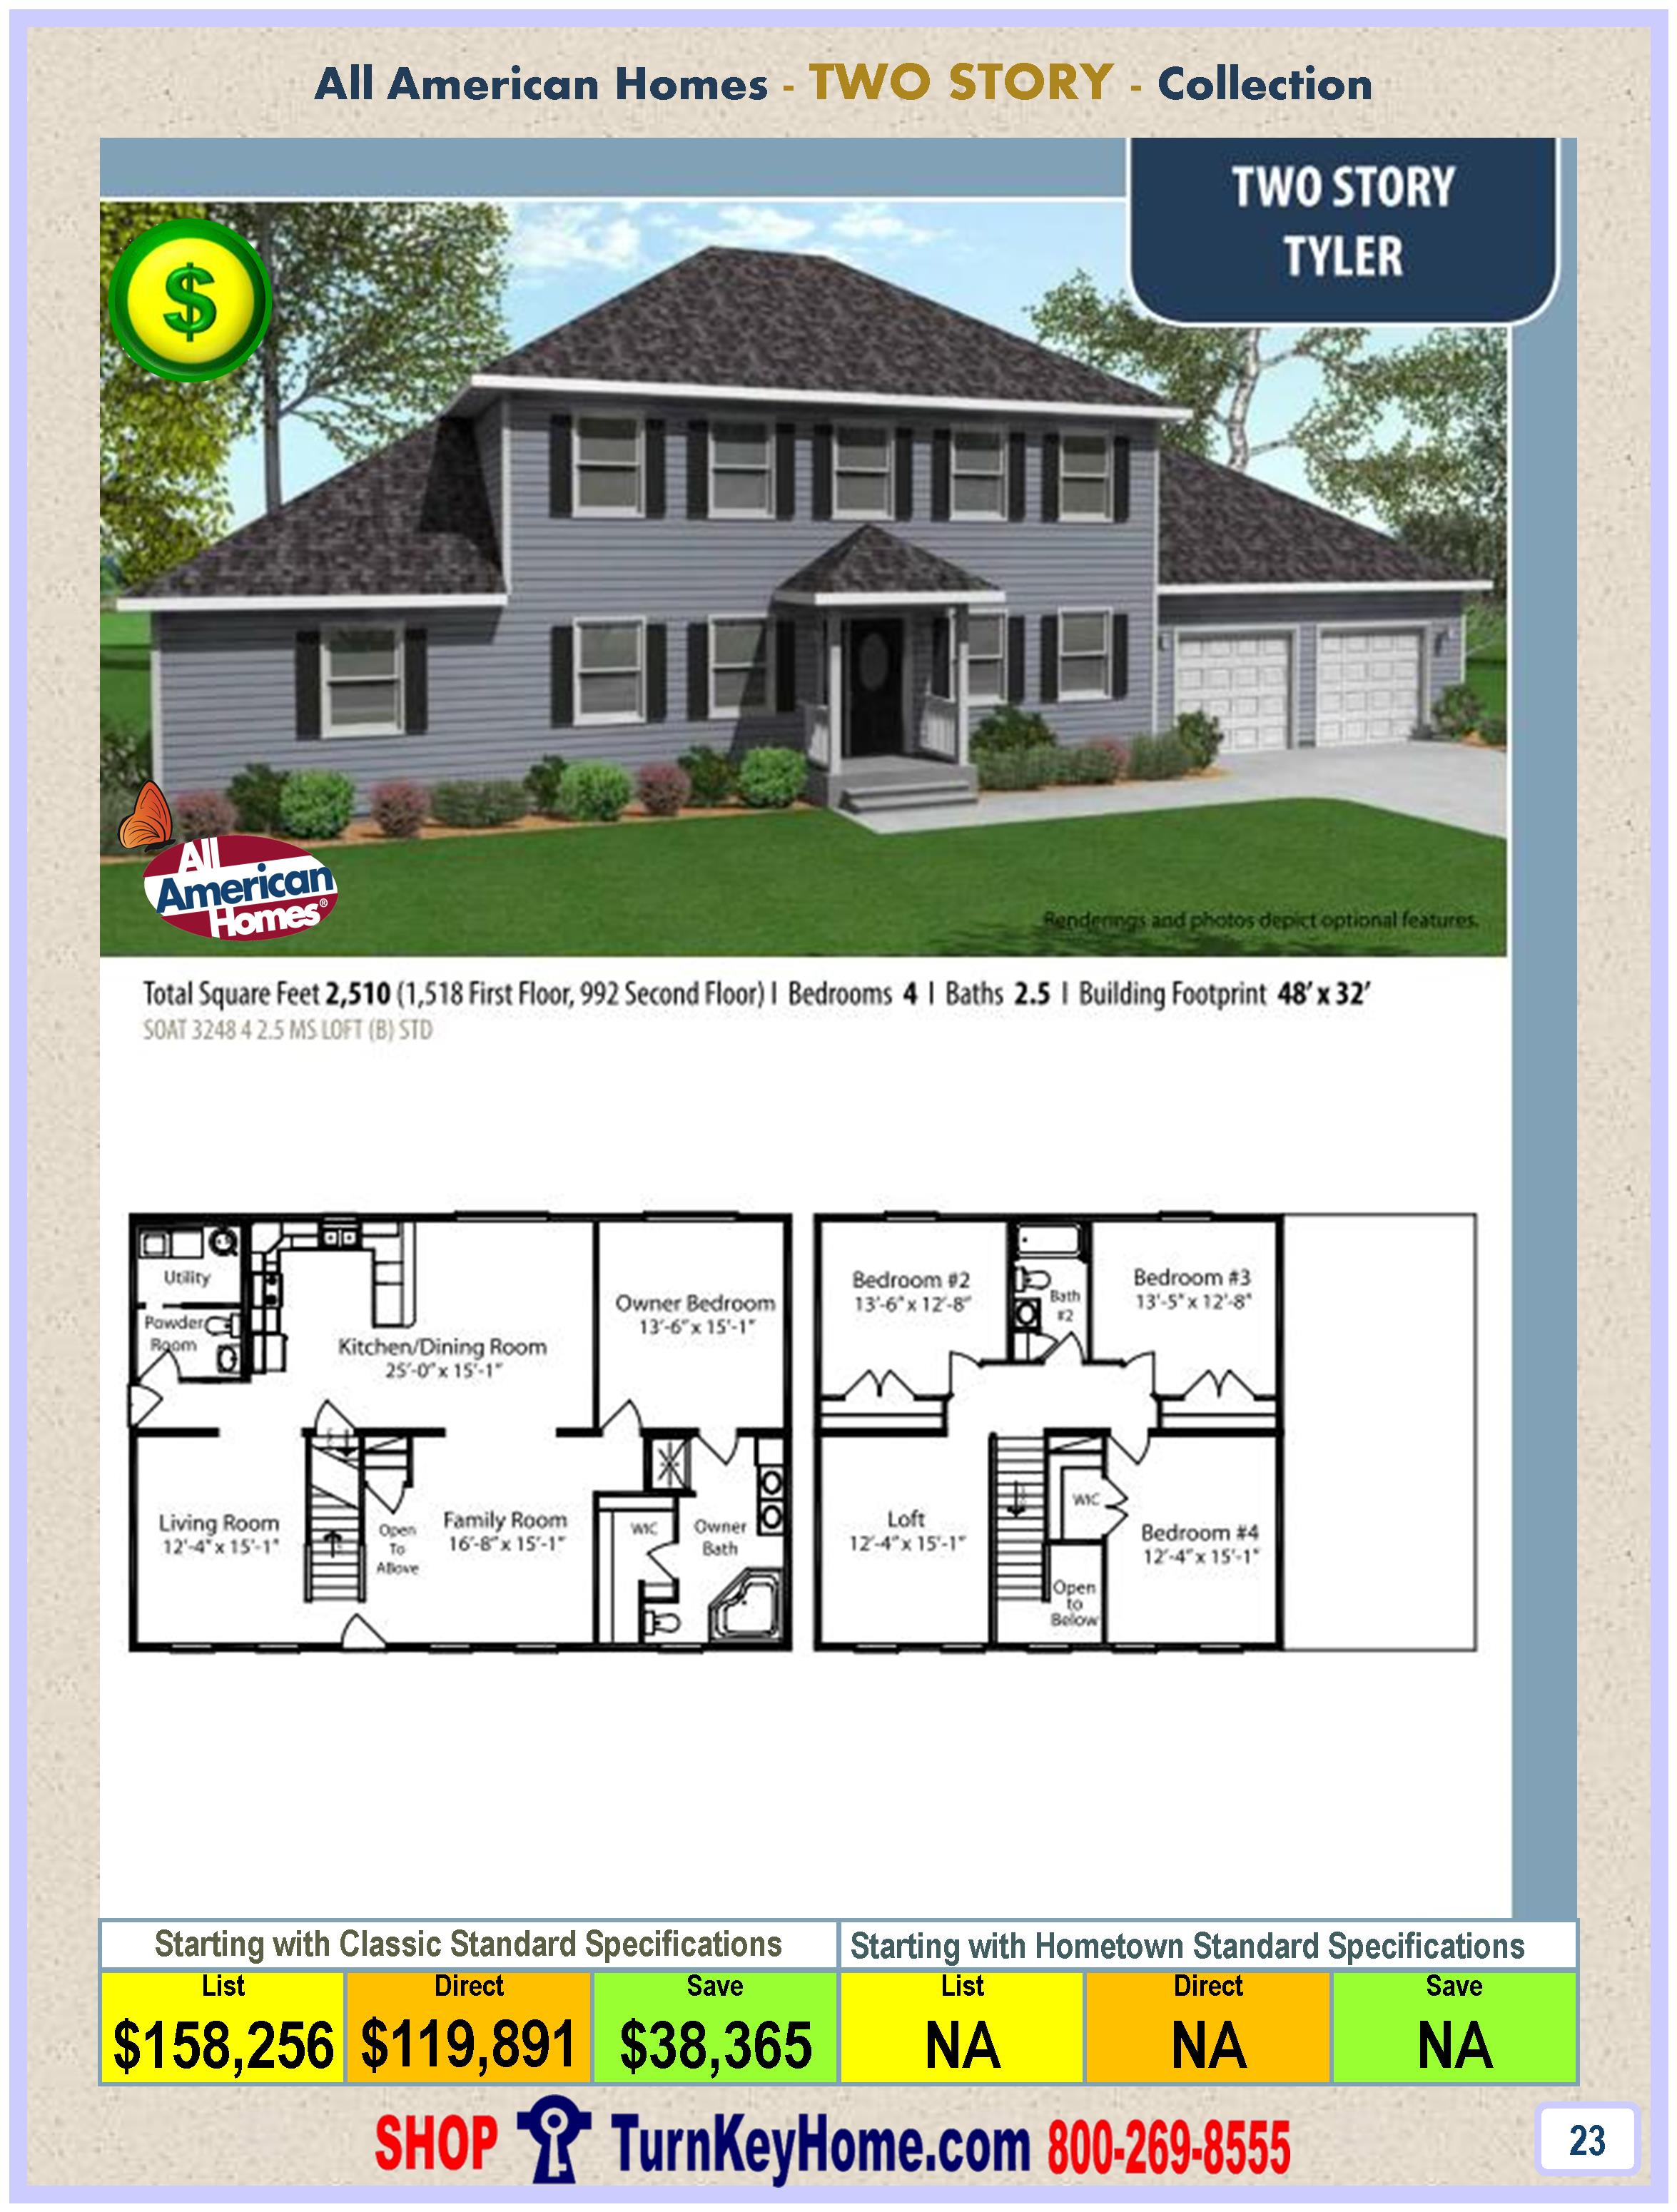 All American Homes tyler all american two story modular home two story collection